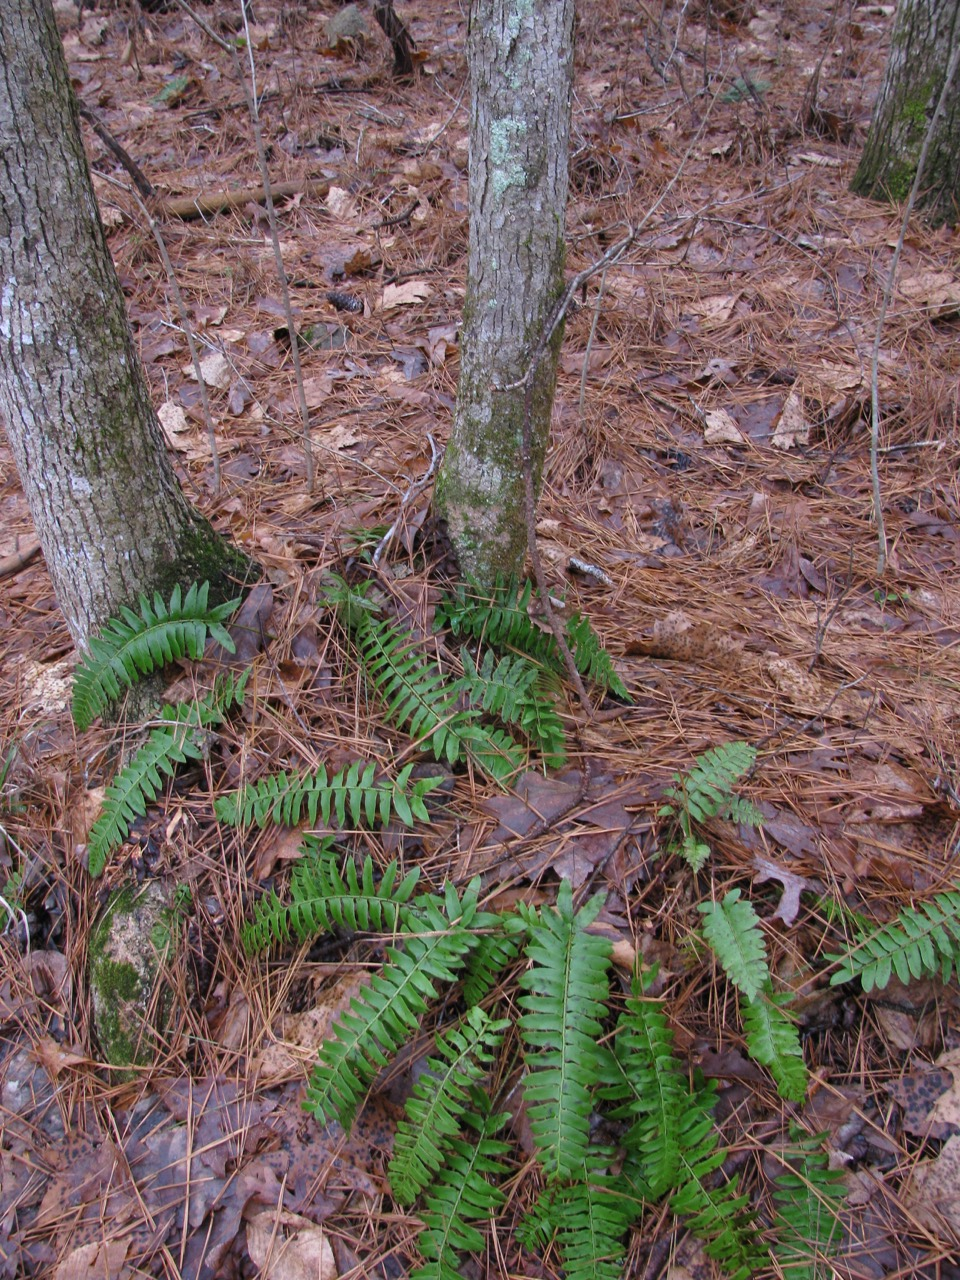 The Scientific Name is Polystichum acrostichoides. You will likely hear them called Christmas Fern. This picture shows the Ferns are green in winter since they are evergreen. of Polystichum acrostichoides